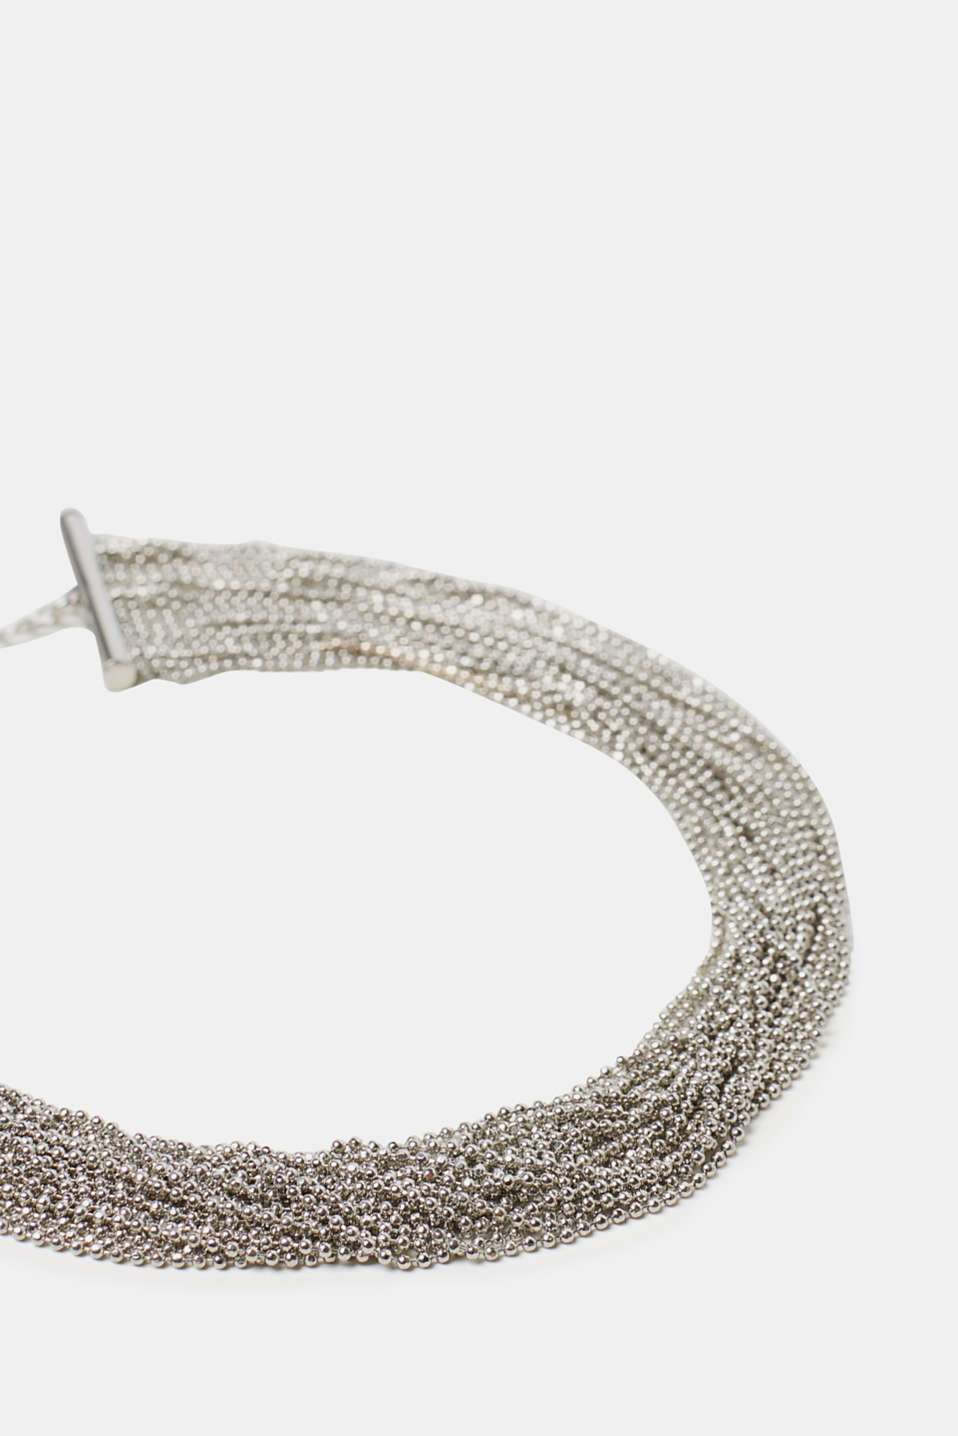 Stylish metal choker